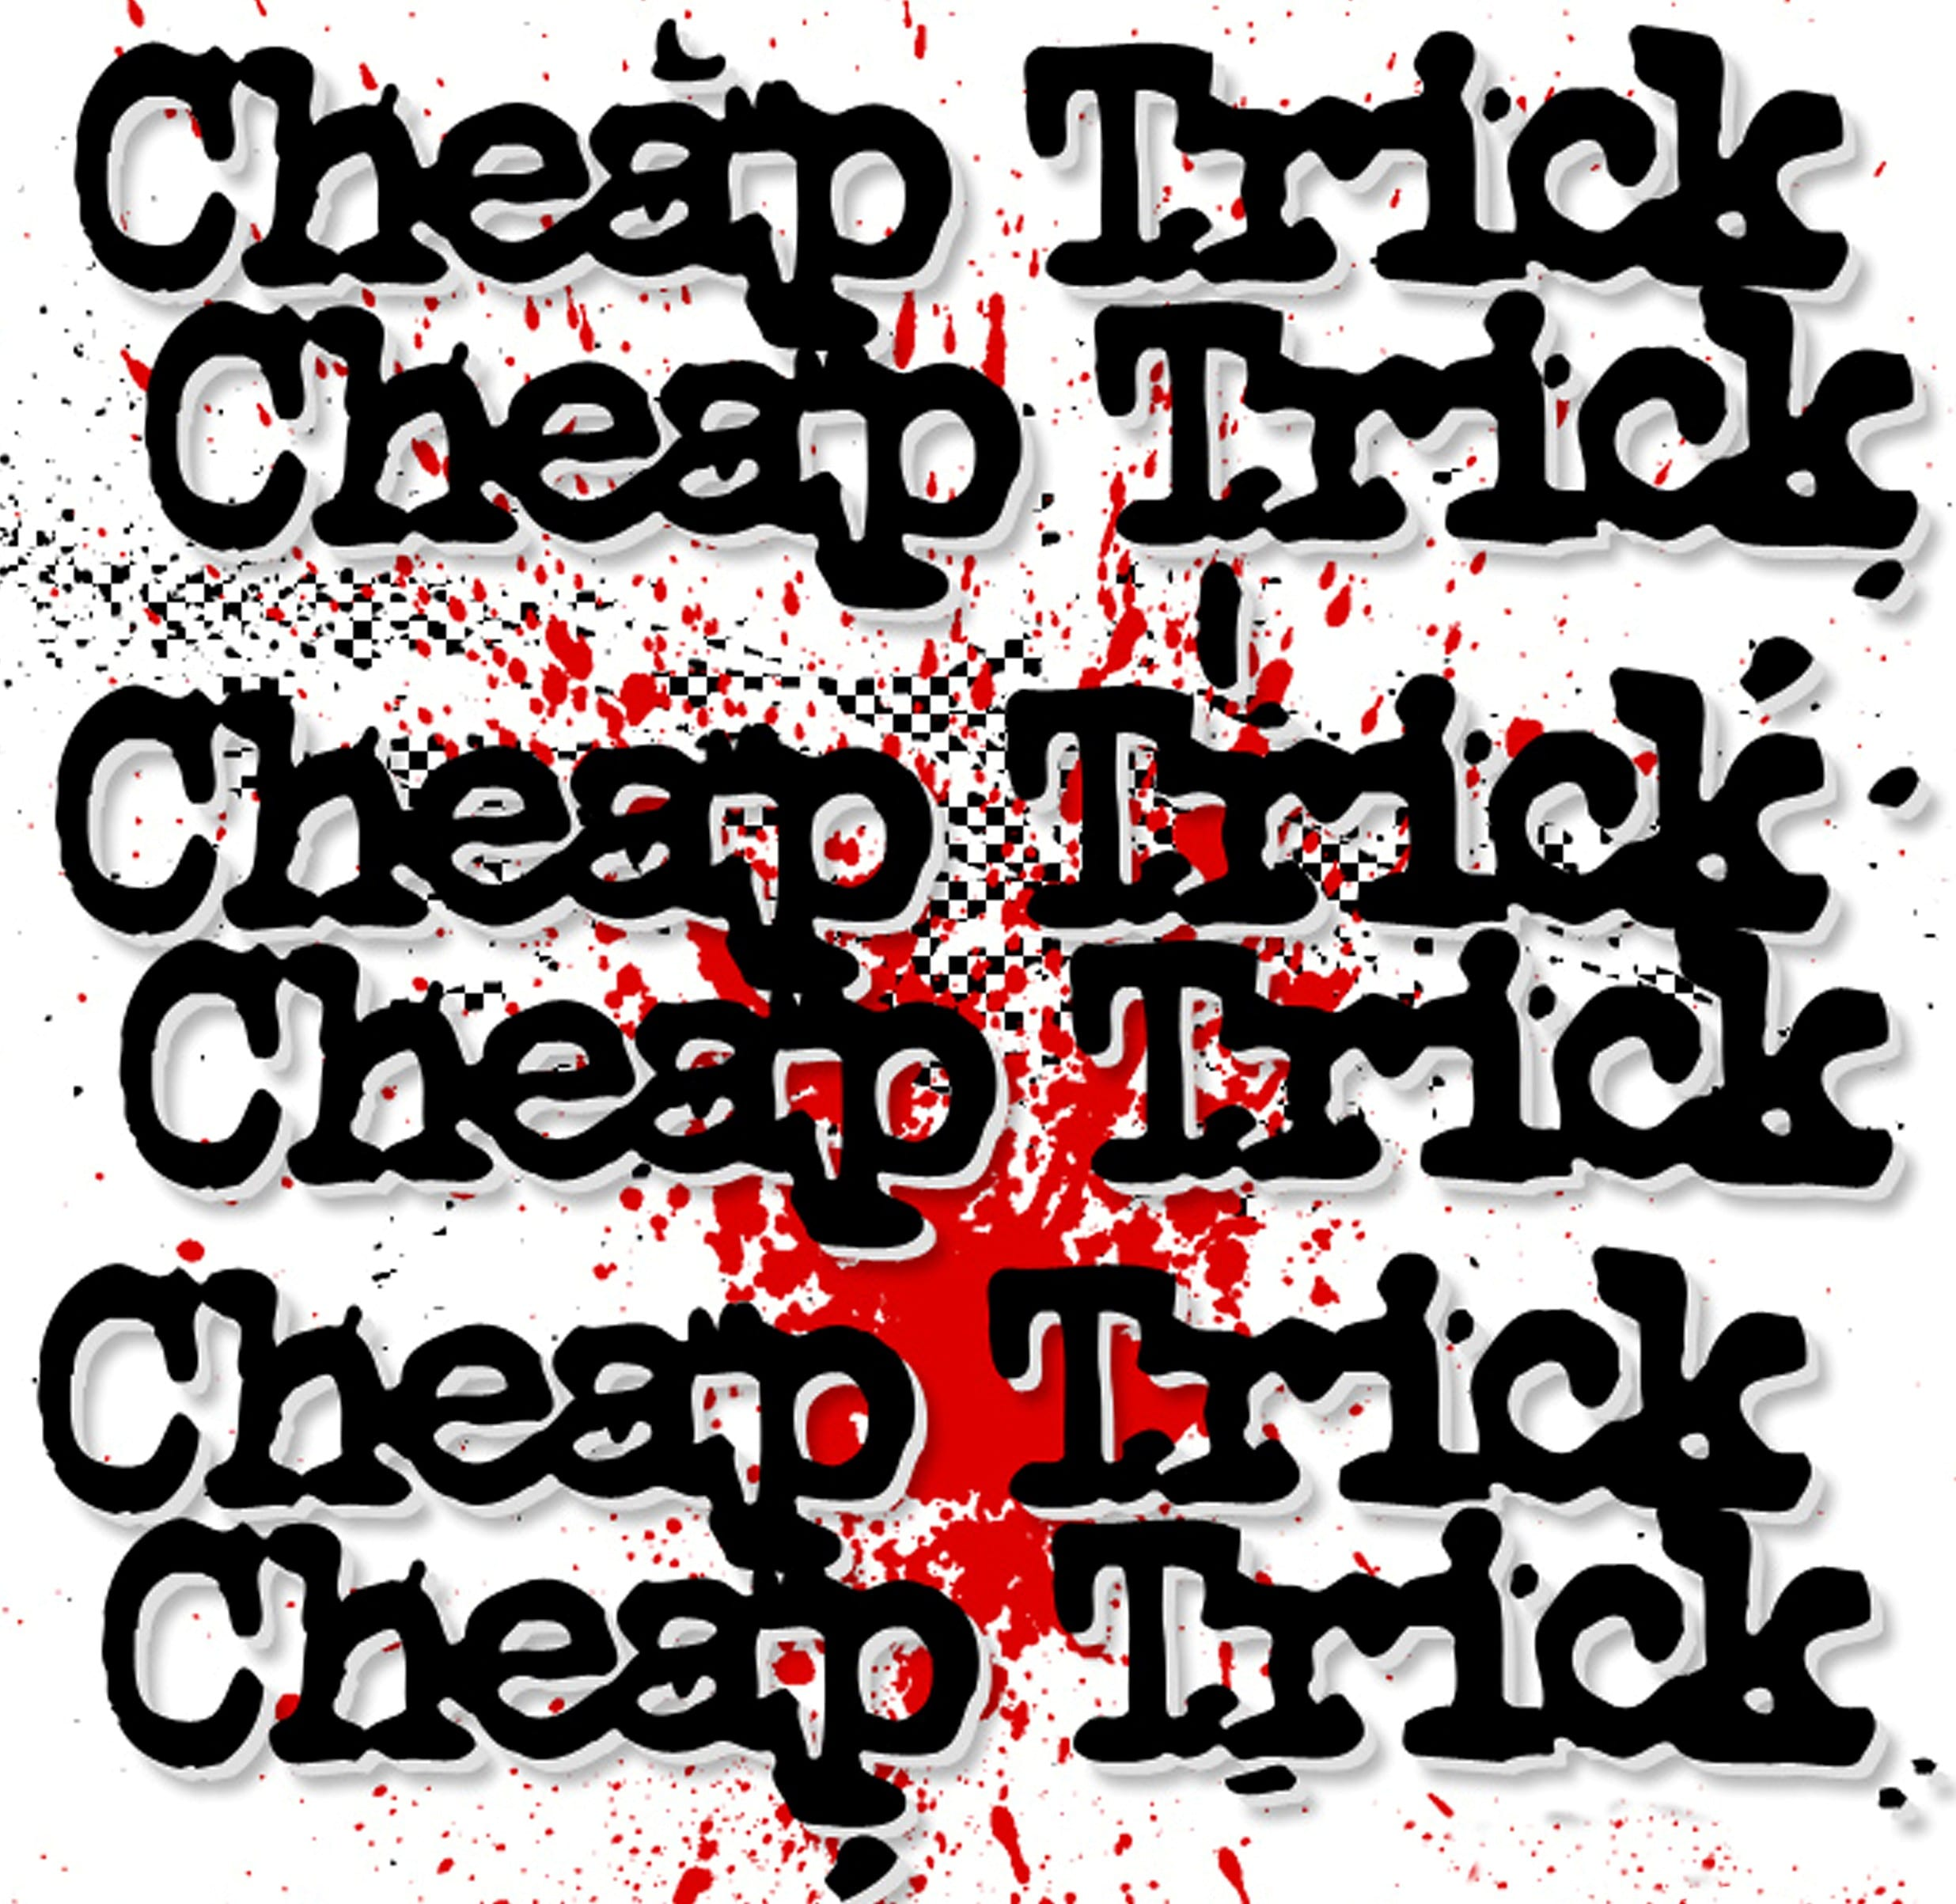 Cheap Trick - B-Sides, Demos, Outtakes, Rarities 1972 - 2009 (2010) 14 CD SET 9